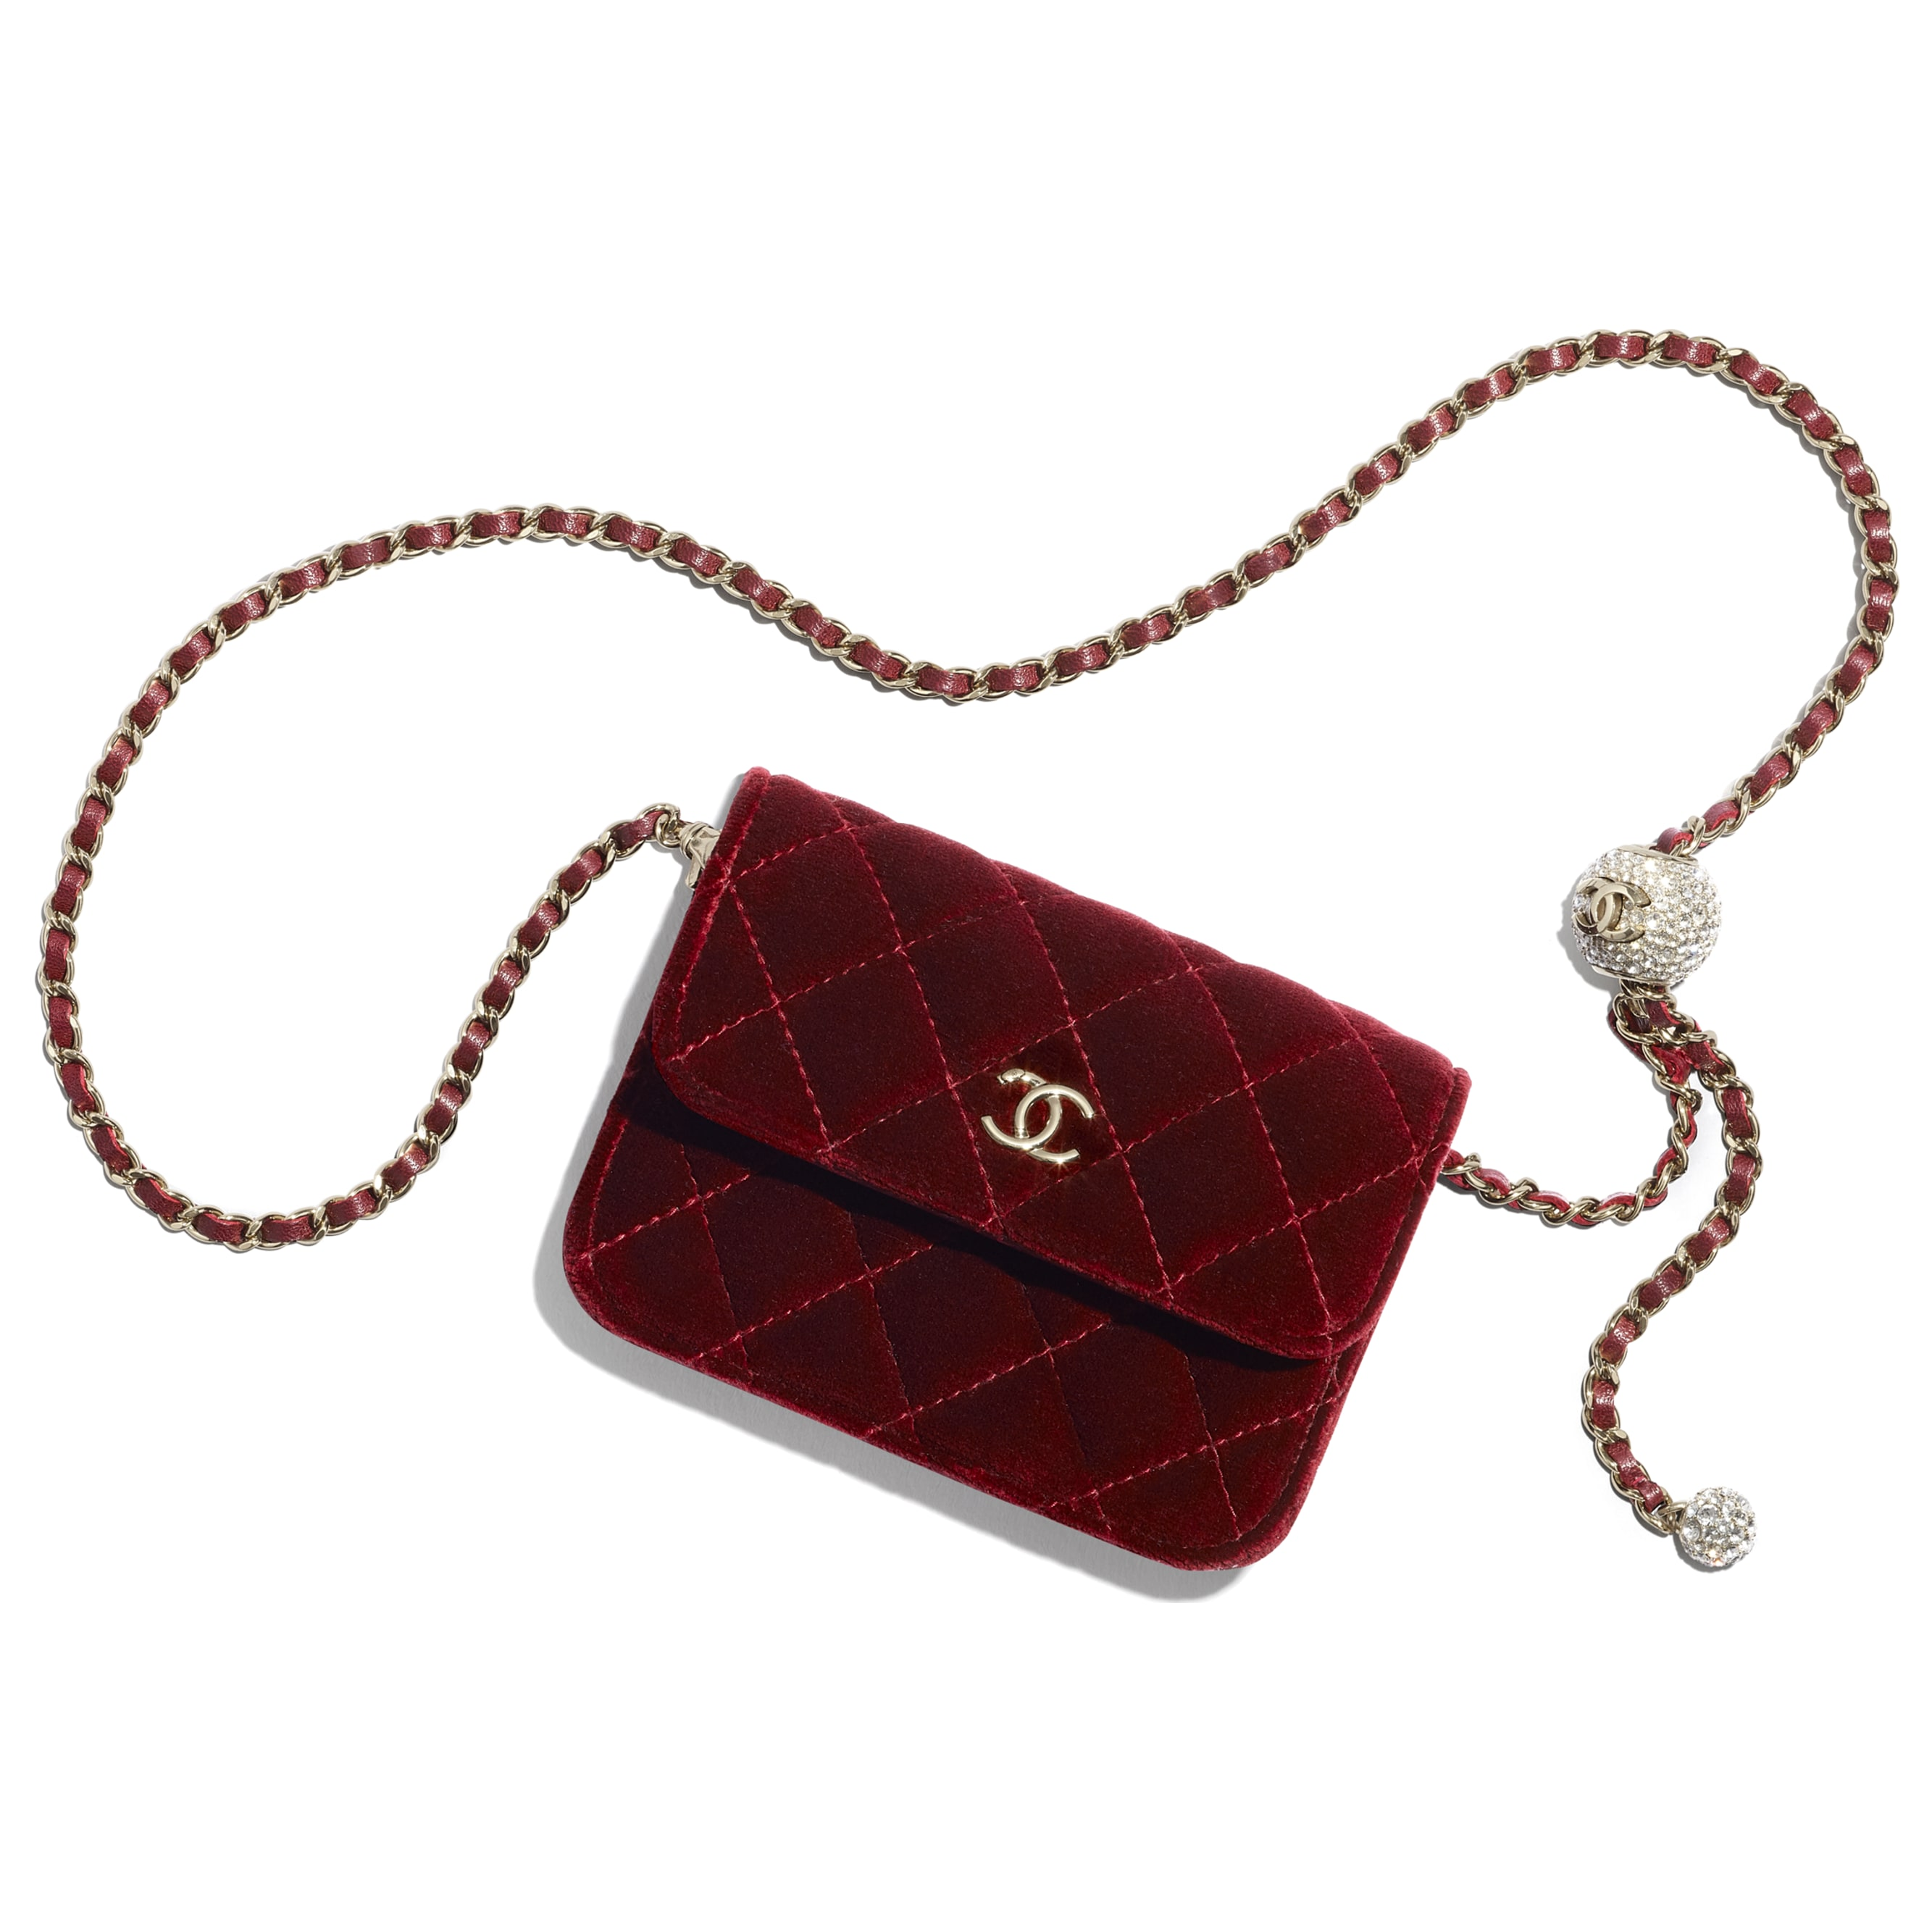 Clutch With Chain - Burgundy - Velvet, Diamanté & Silver-Tone Metal - CHANEL - Default view - see standard sized version